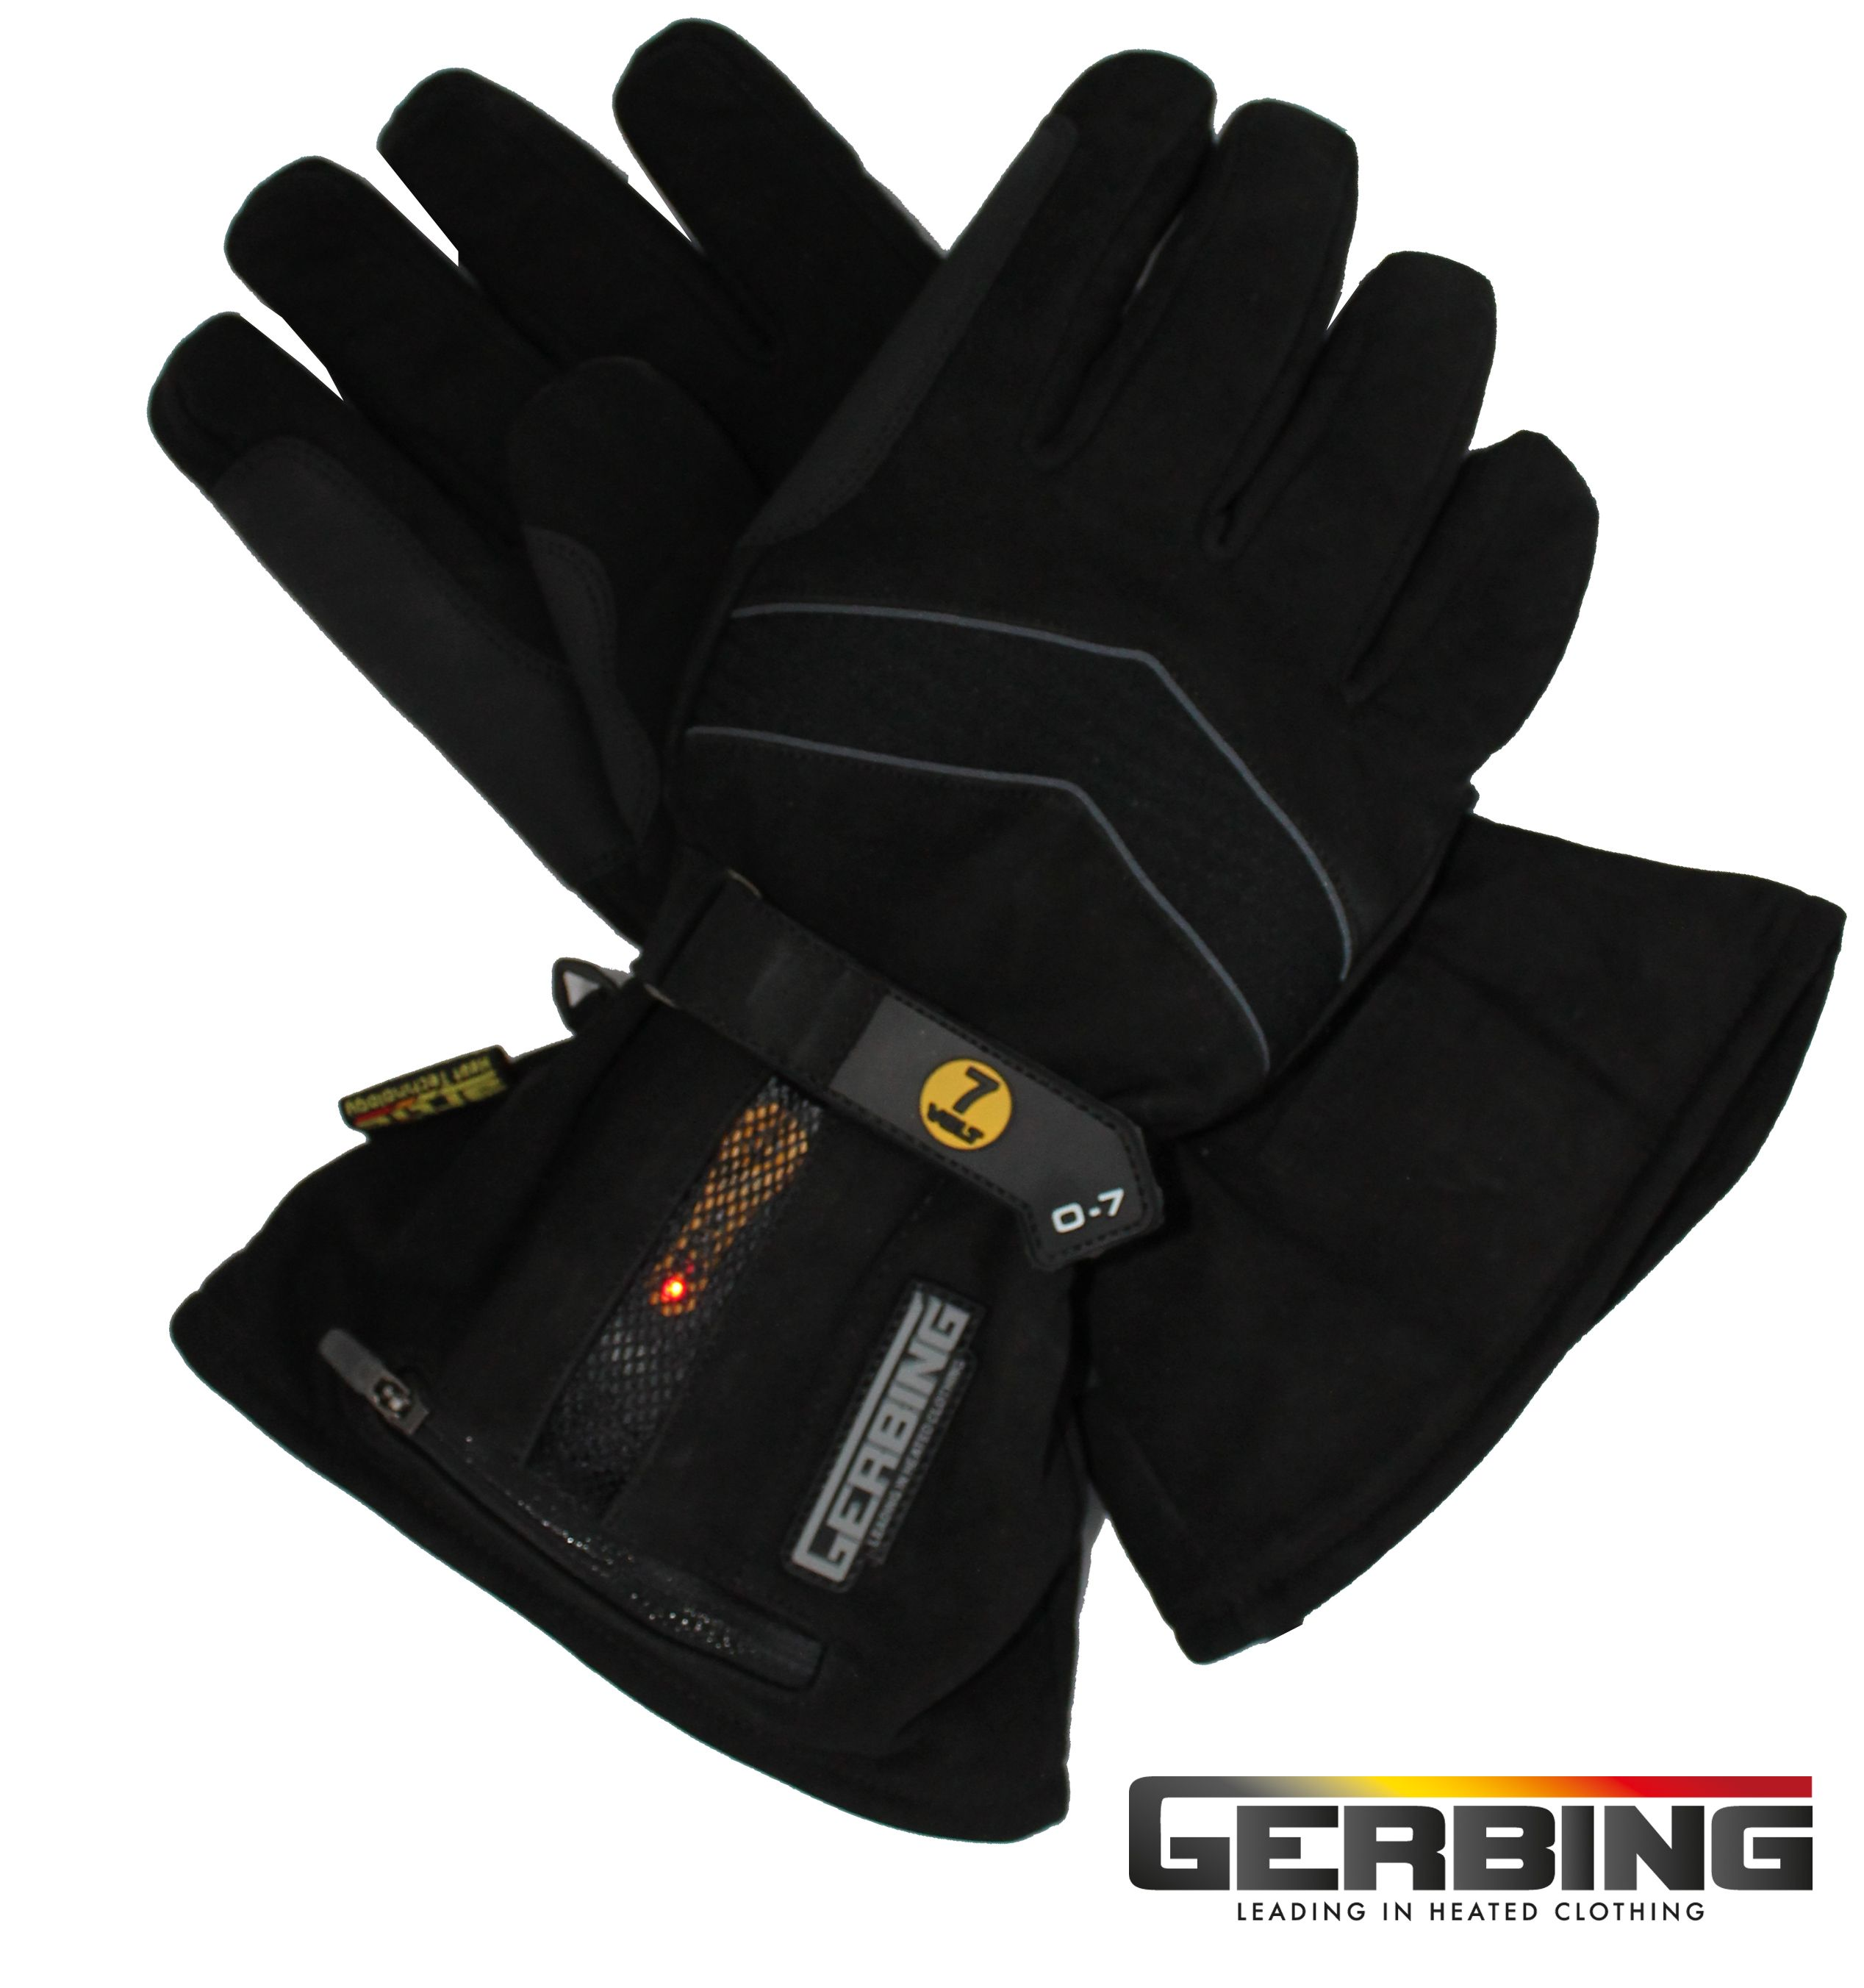 These O 7 Heated Gloves Are Specialy Made For Outdoor Activities Such As Riding A Scooter Or Bicycle Even A W Beheizbare Handschuhe Handschuhe Fahrrad Fahren